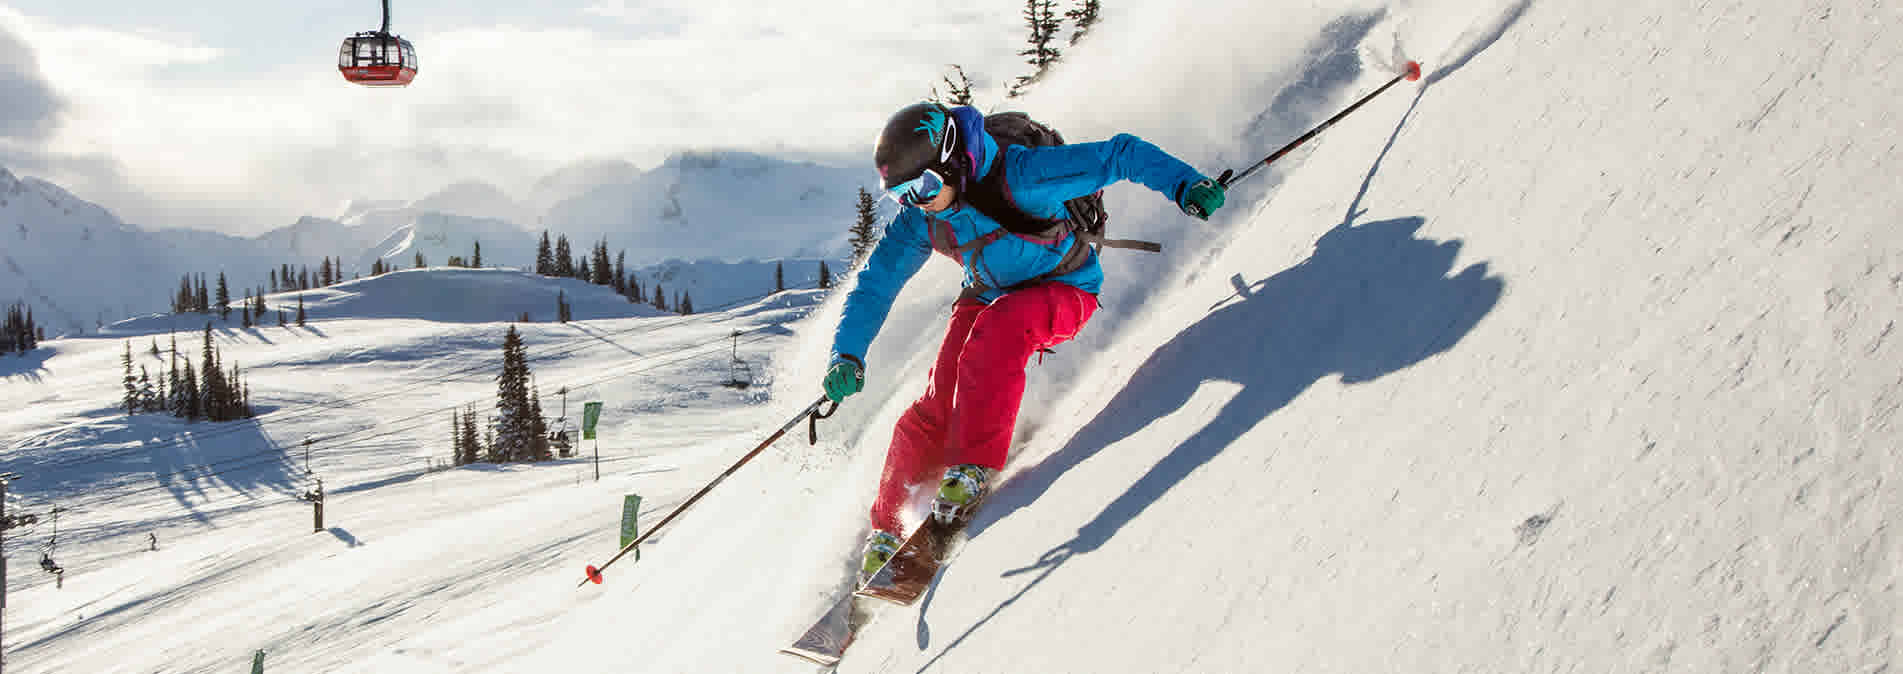 Skiing Whistler Blackcomb Canada